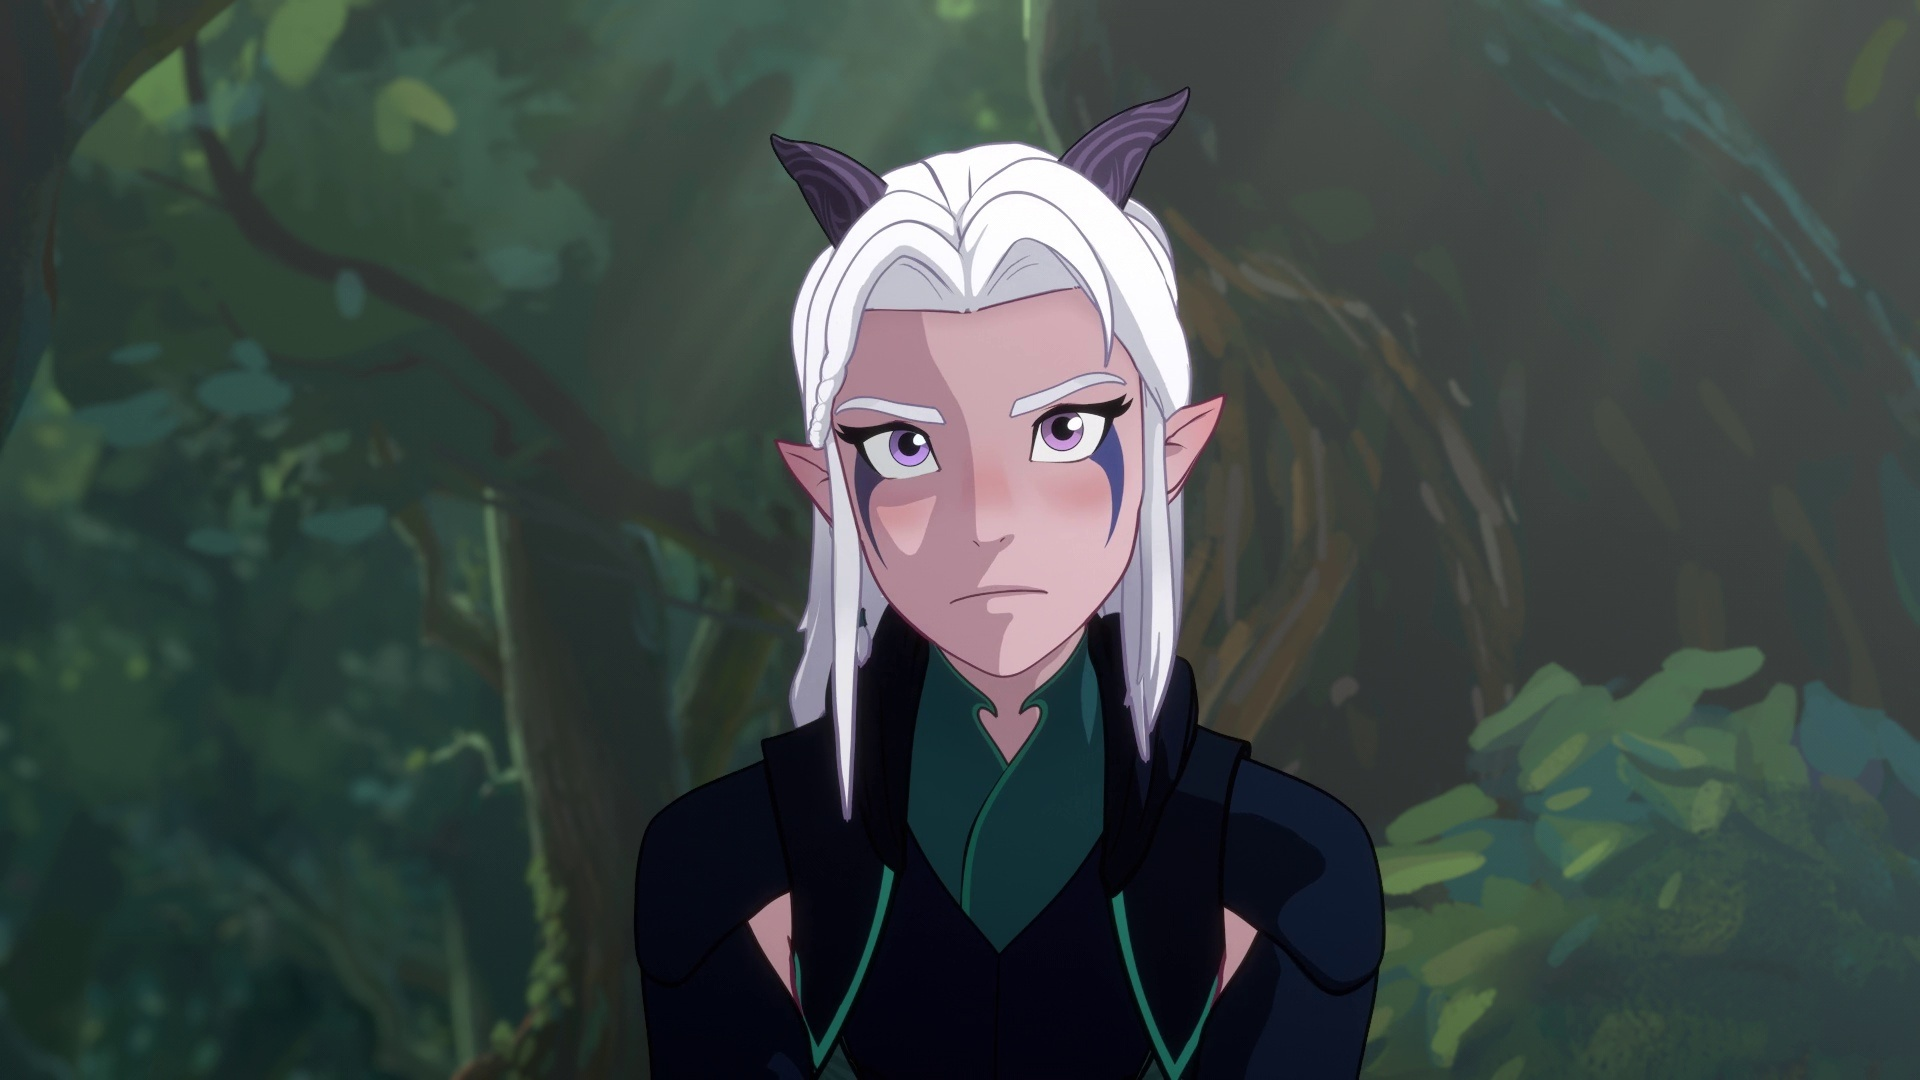 The Dragon Prince best wallpaper